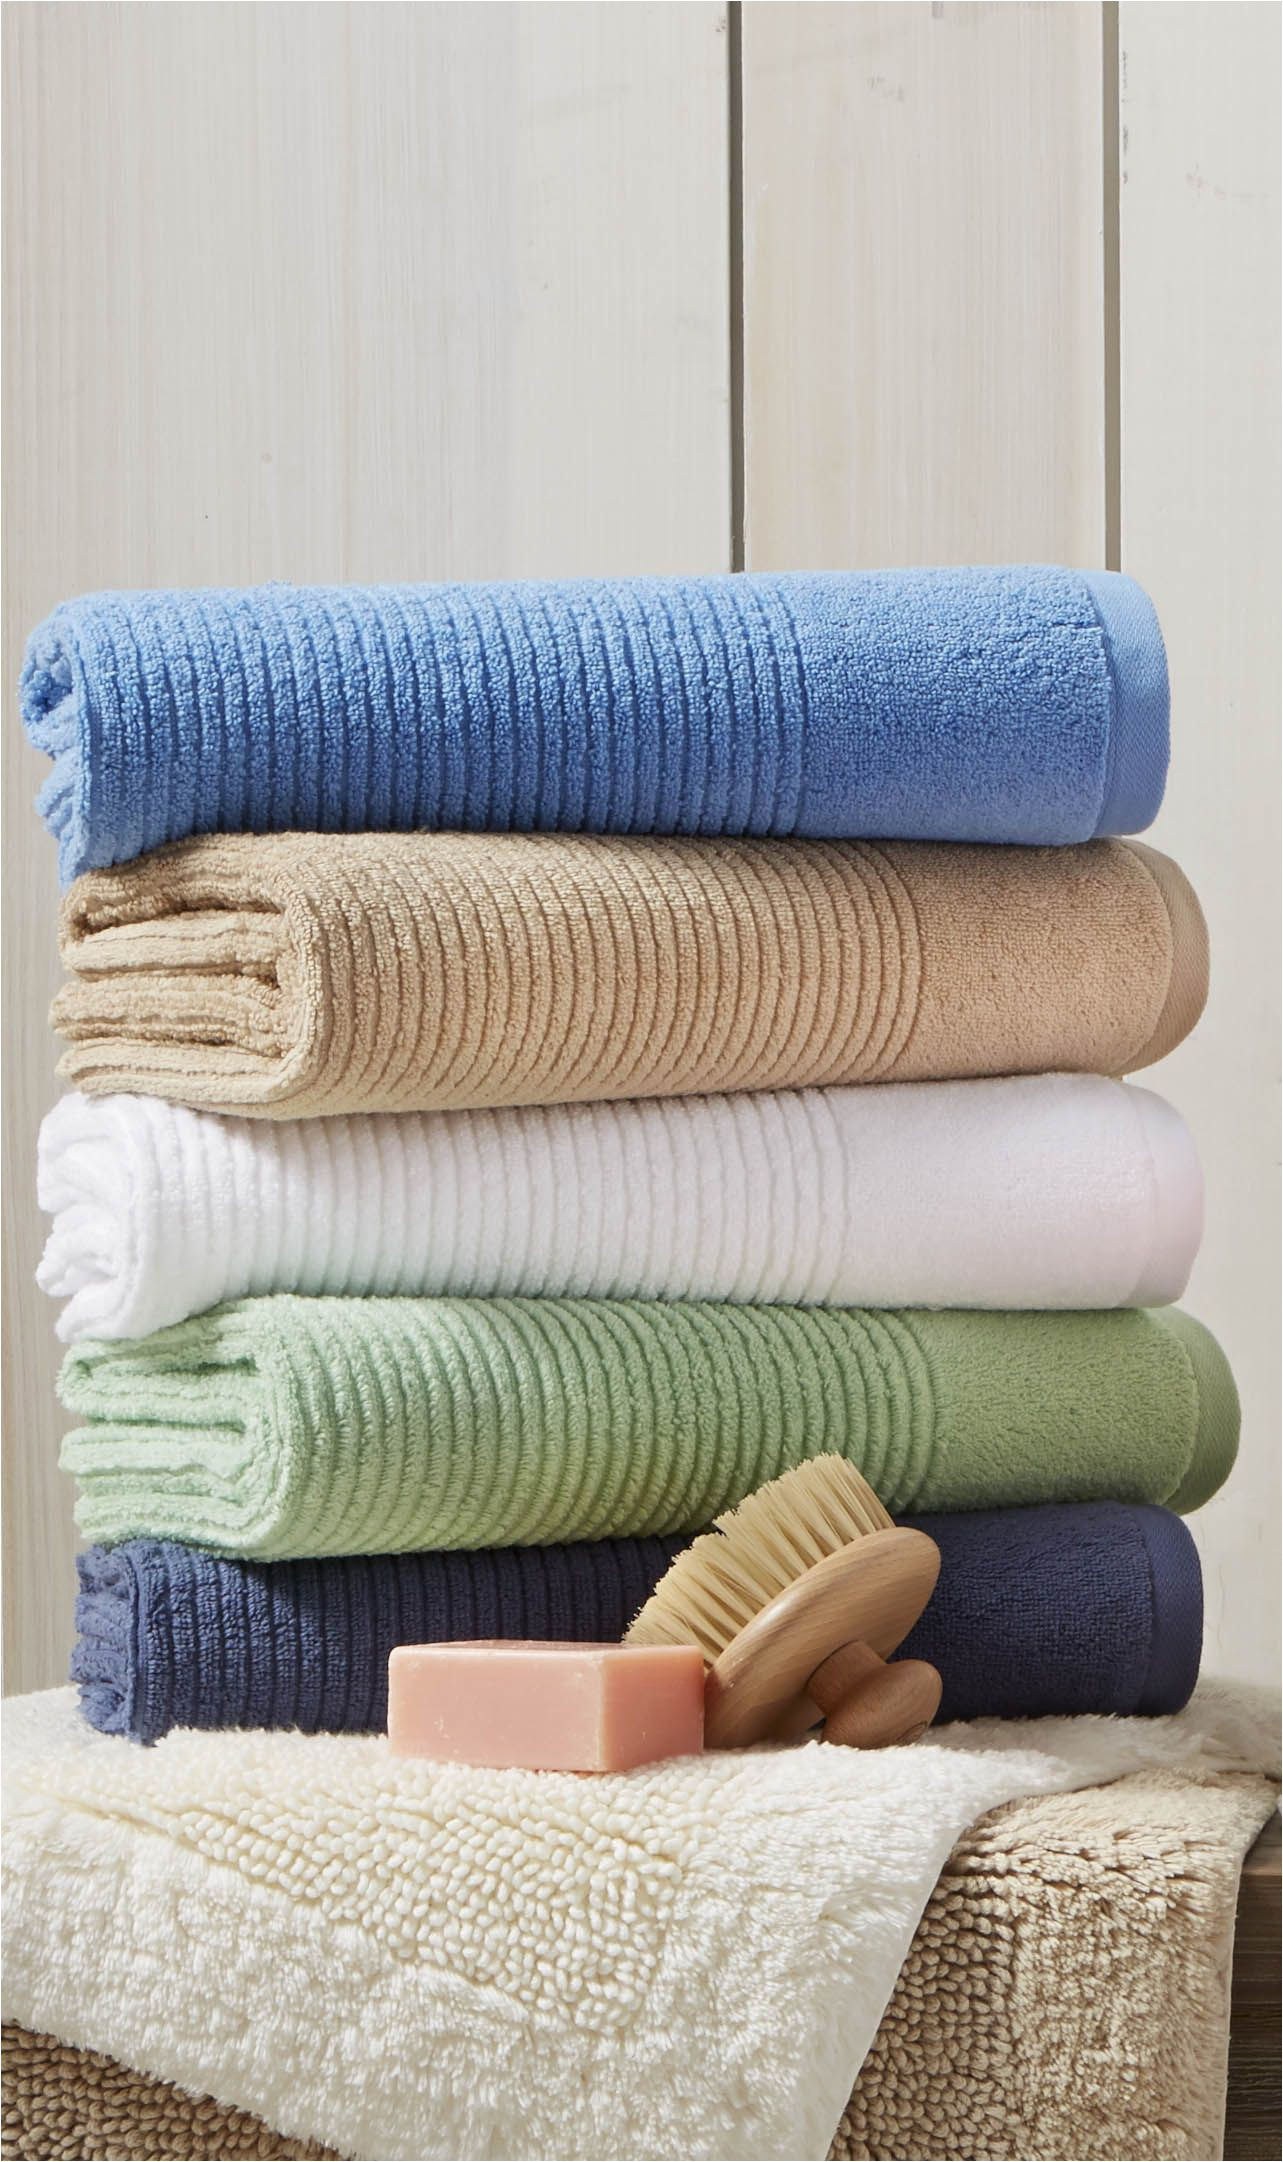 Jcpenney Bath towels and Rugs Martha Stewart Collection 27